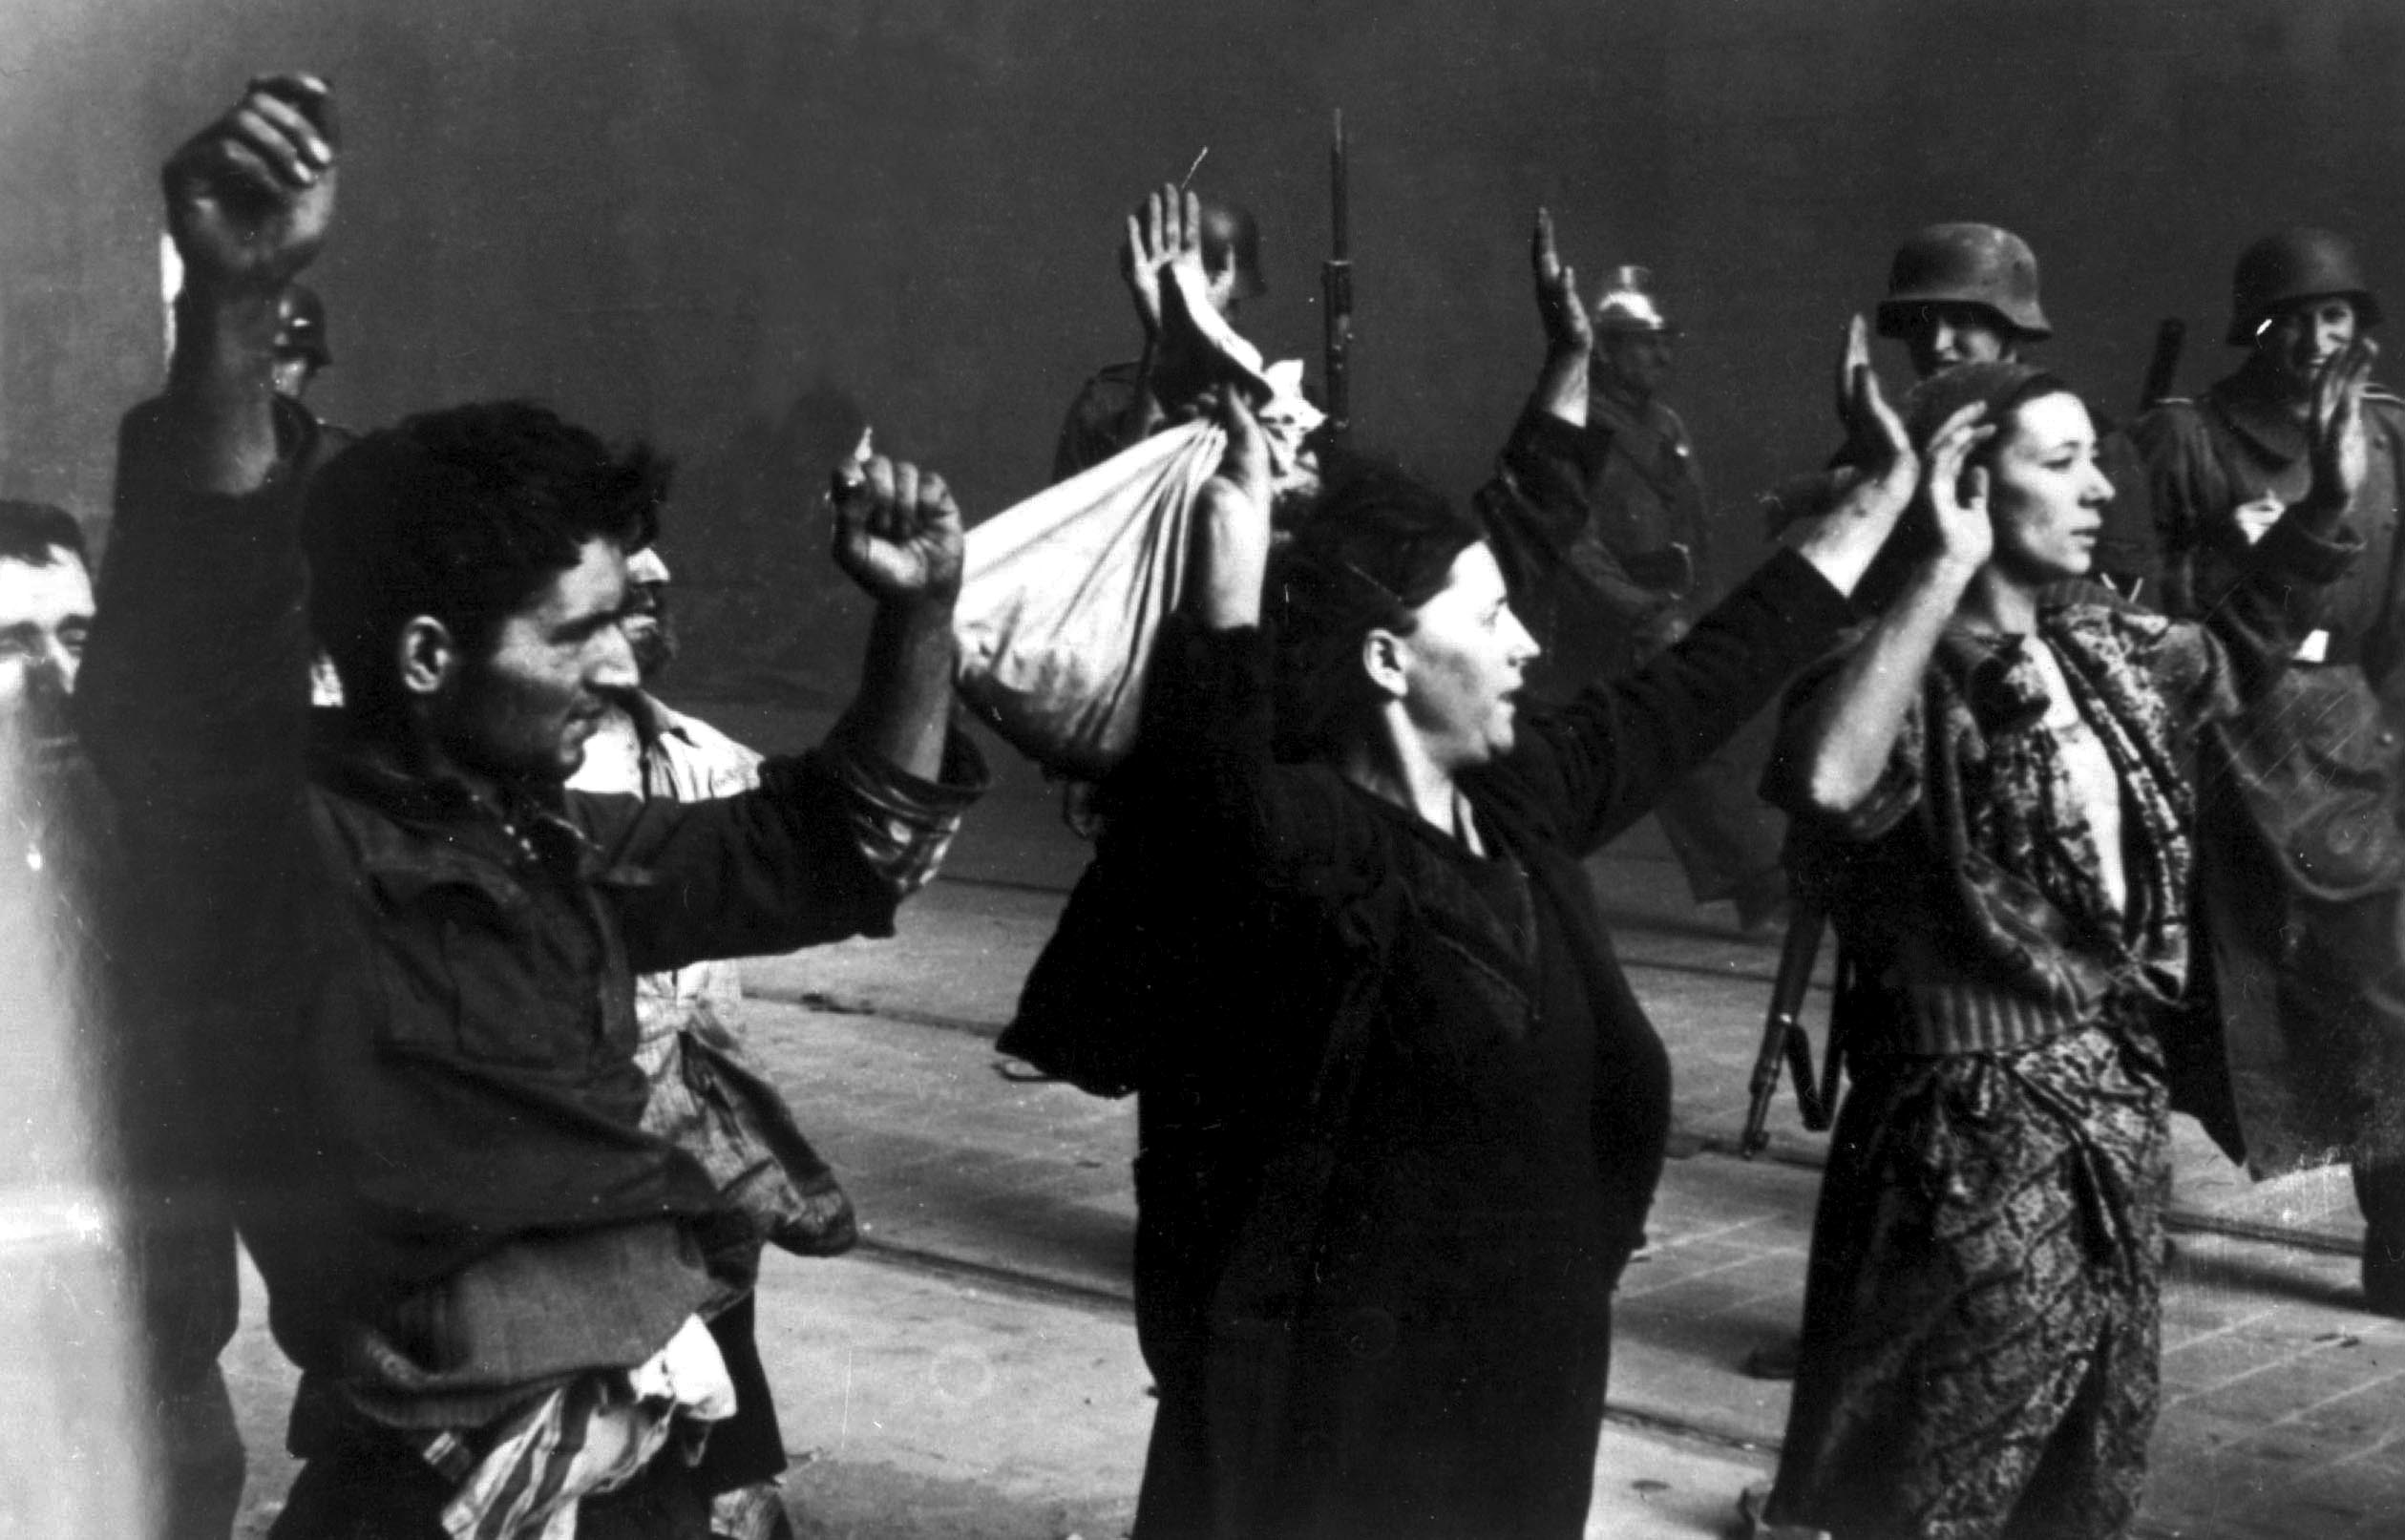 Honorable surrender. Rabbi Menahem Ziemba's outlook evidently triumphed in the end; for many Jews, the Warsaw ghetto uprising represents a spark of Jewish heroism in the dark humiliation of the Holocaust. Jewish women captured at the end of the revolt